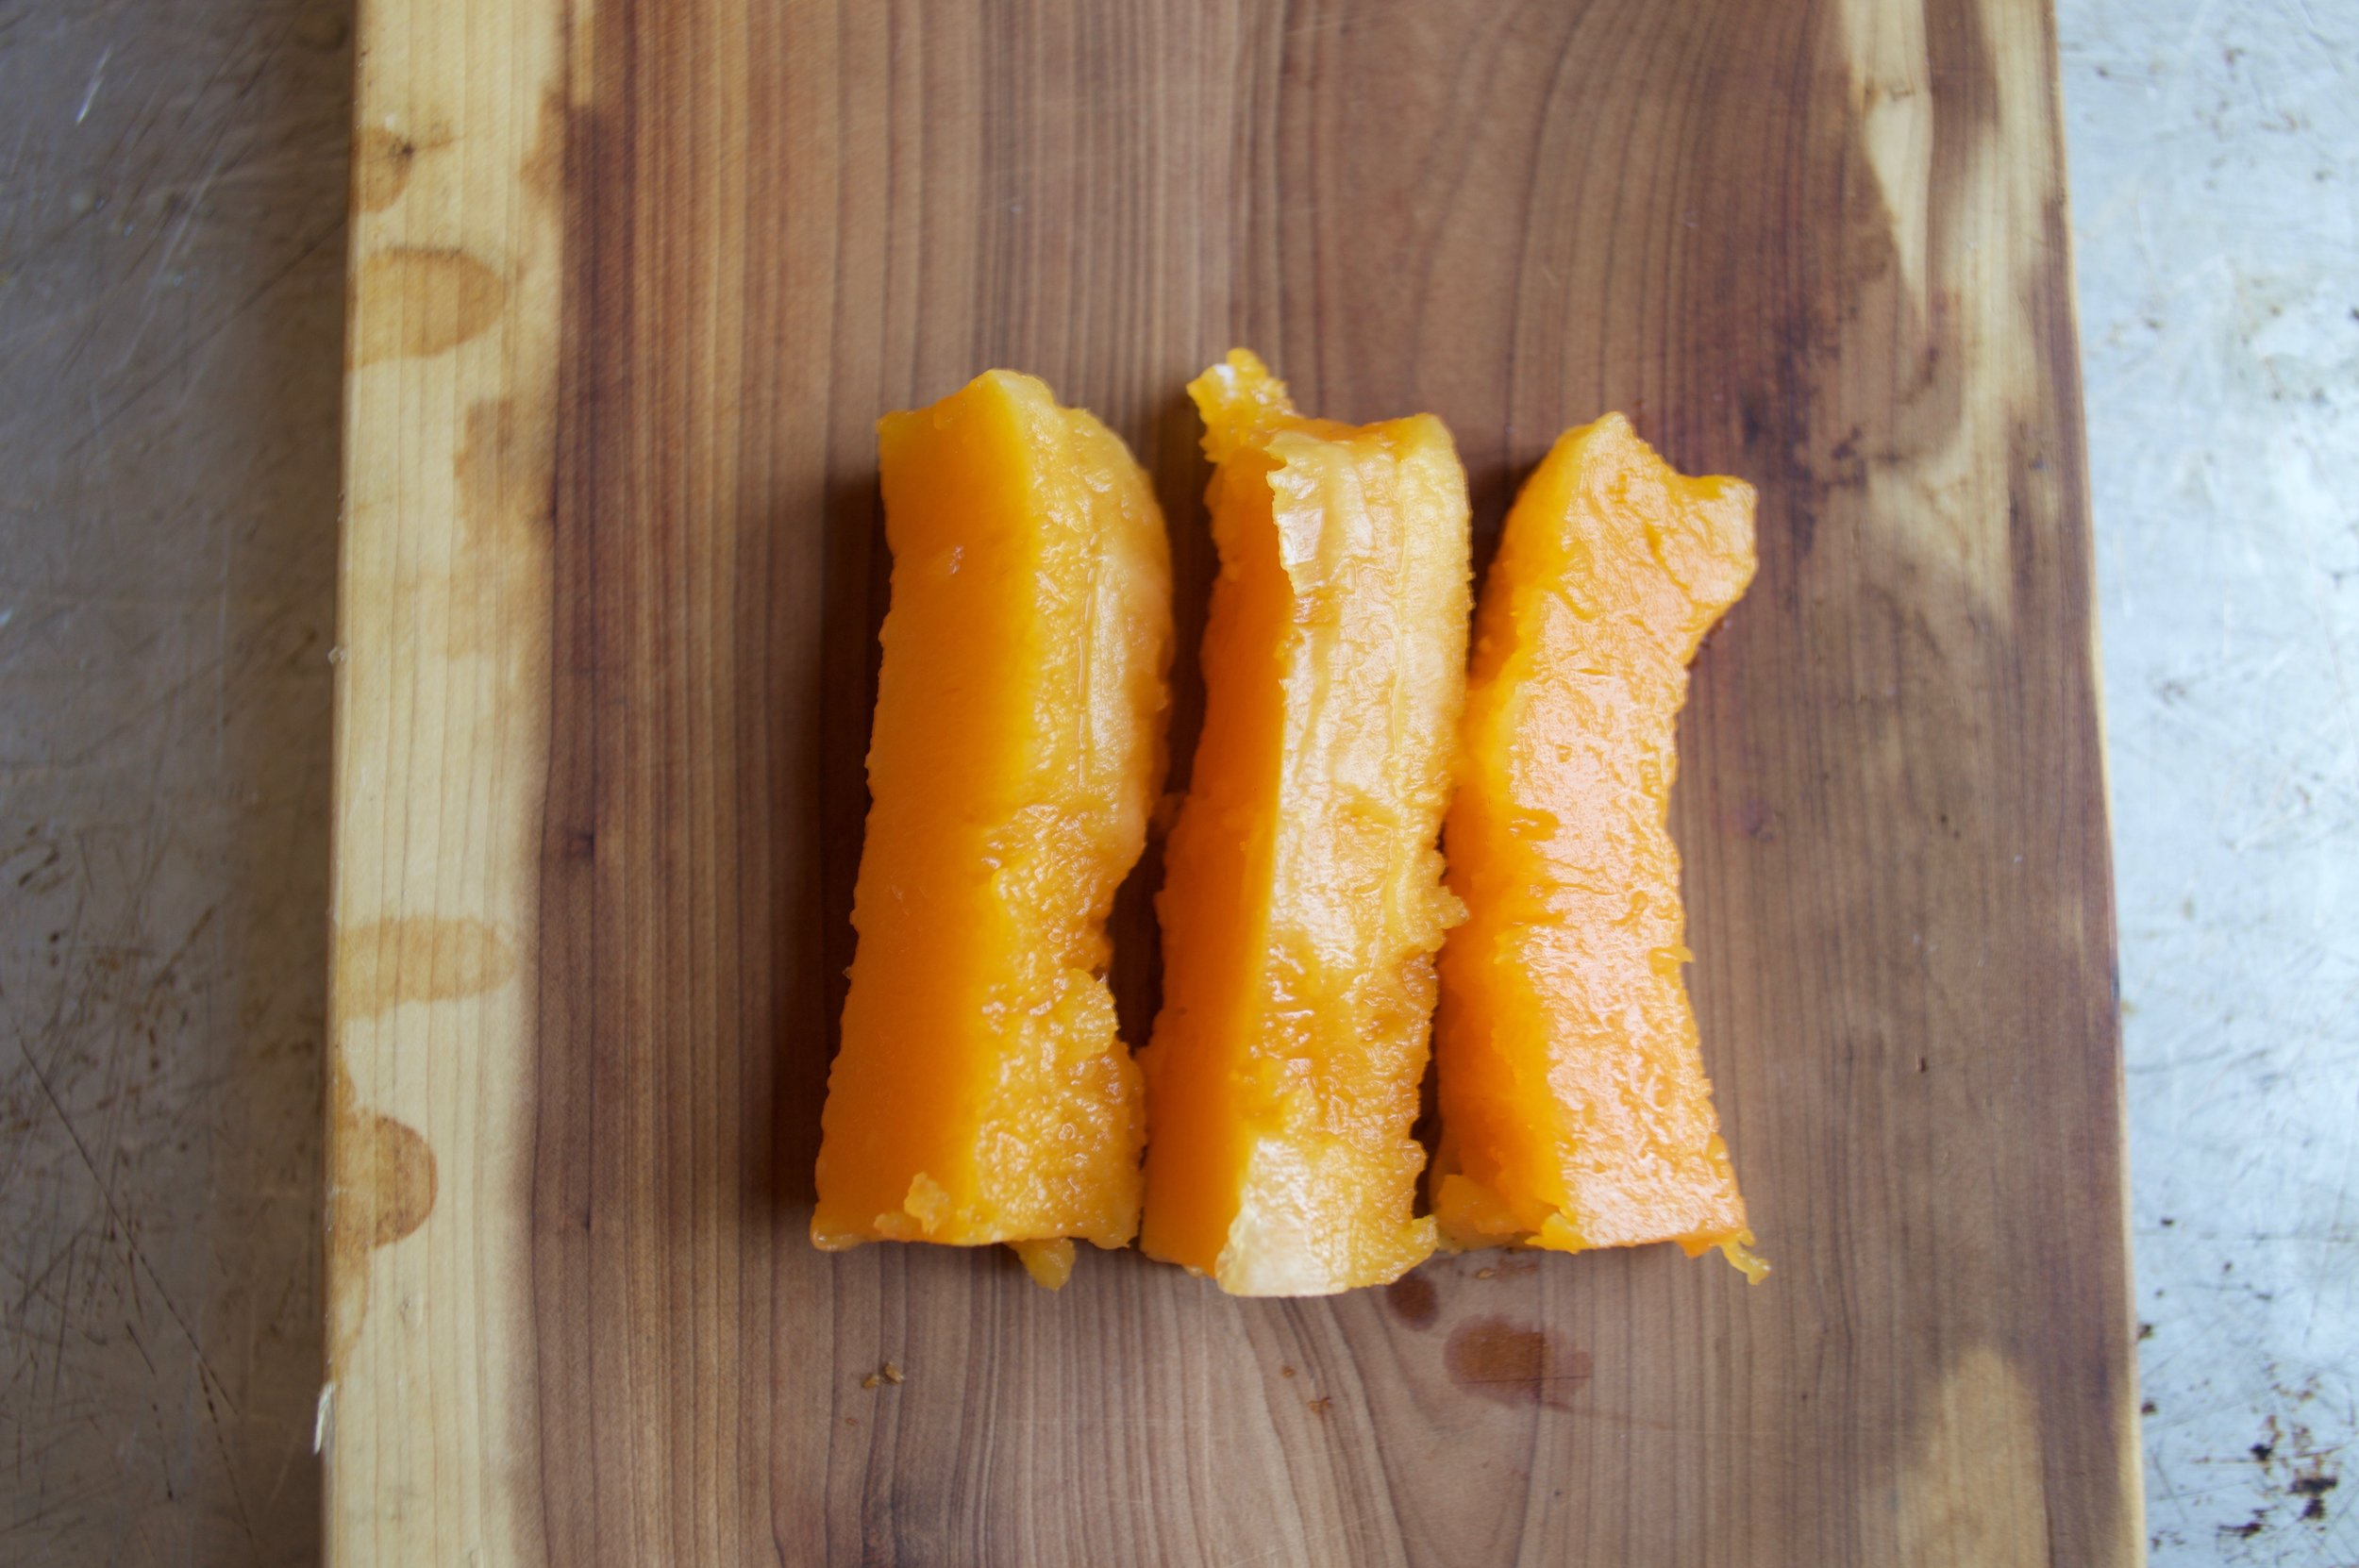 Butternut Squash - roasted with olive oil and cinnamon.